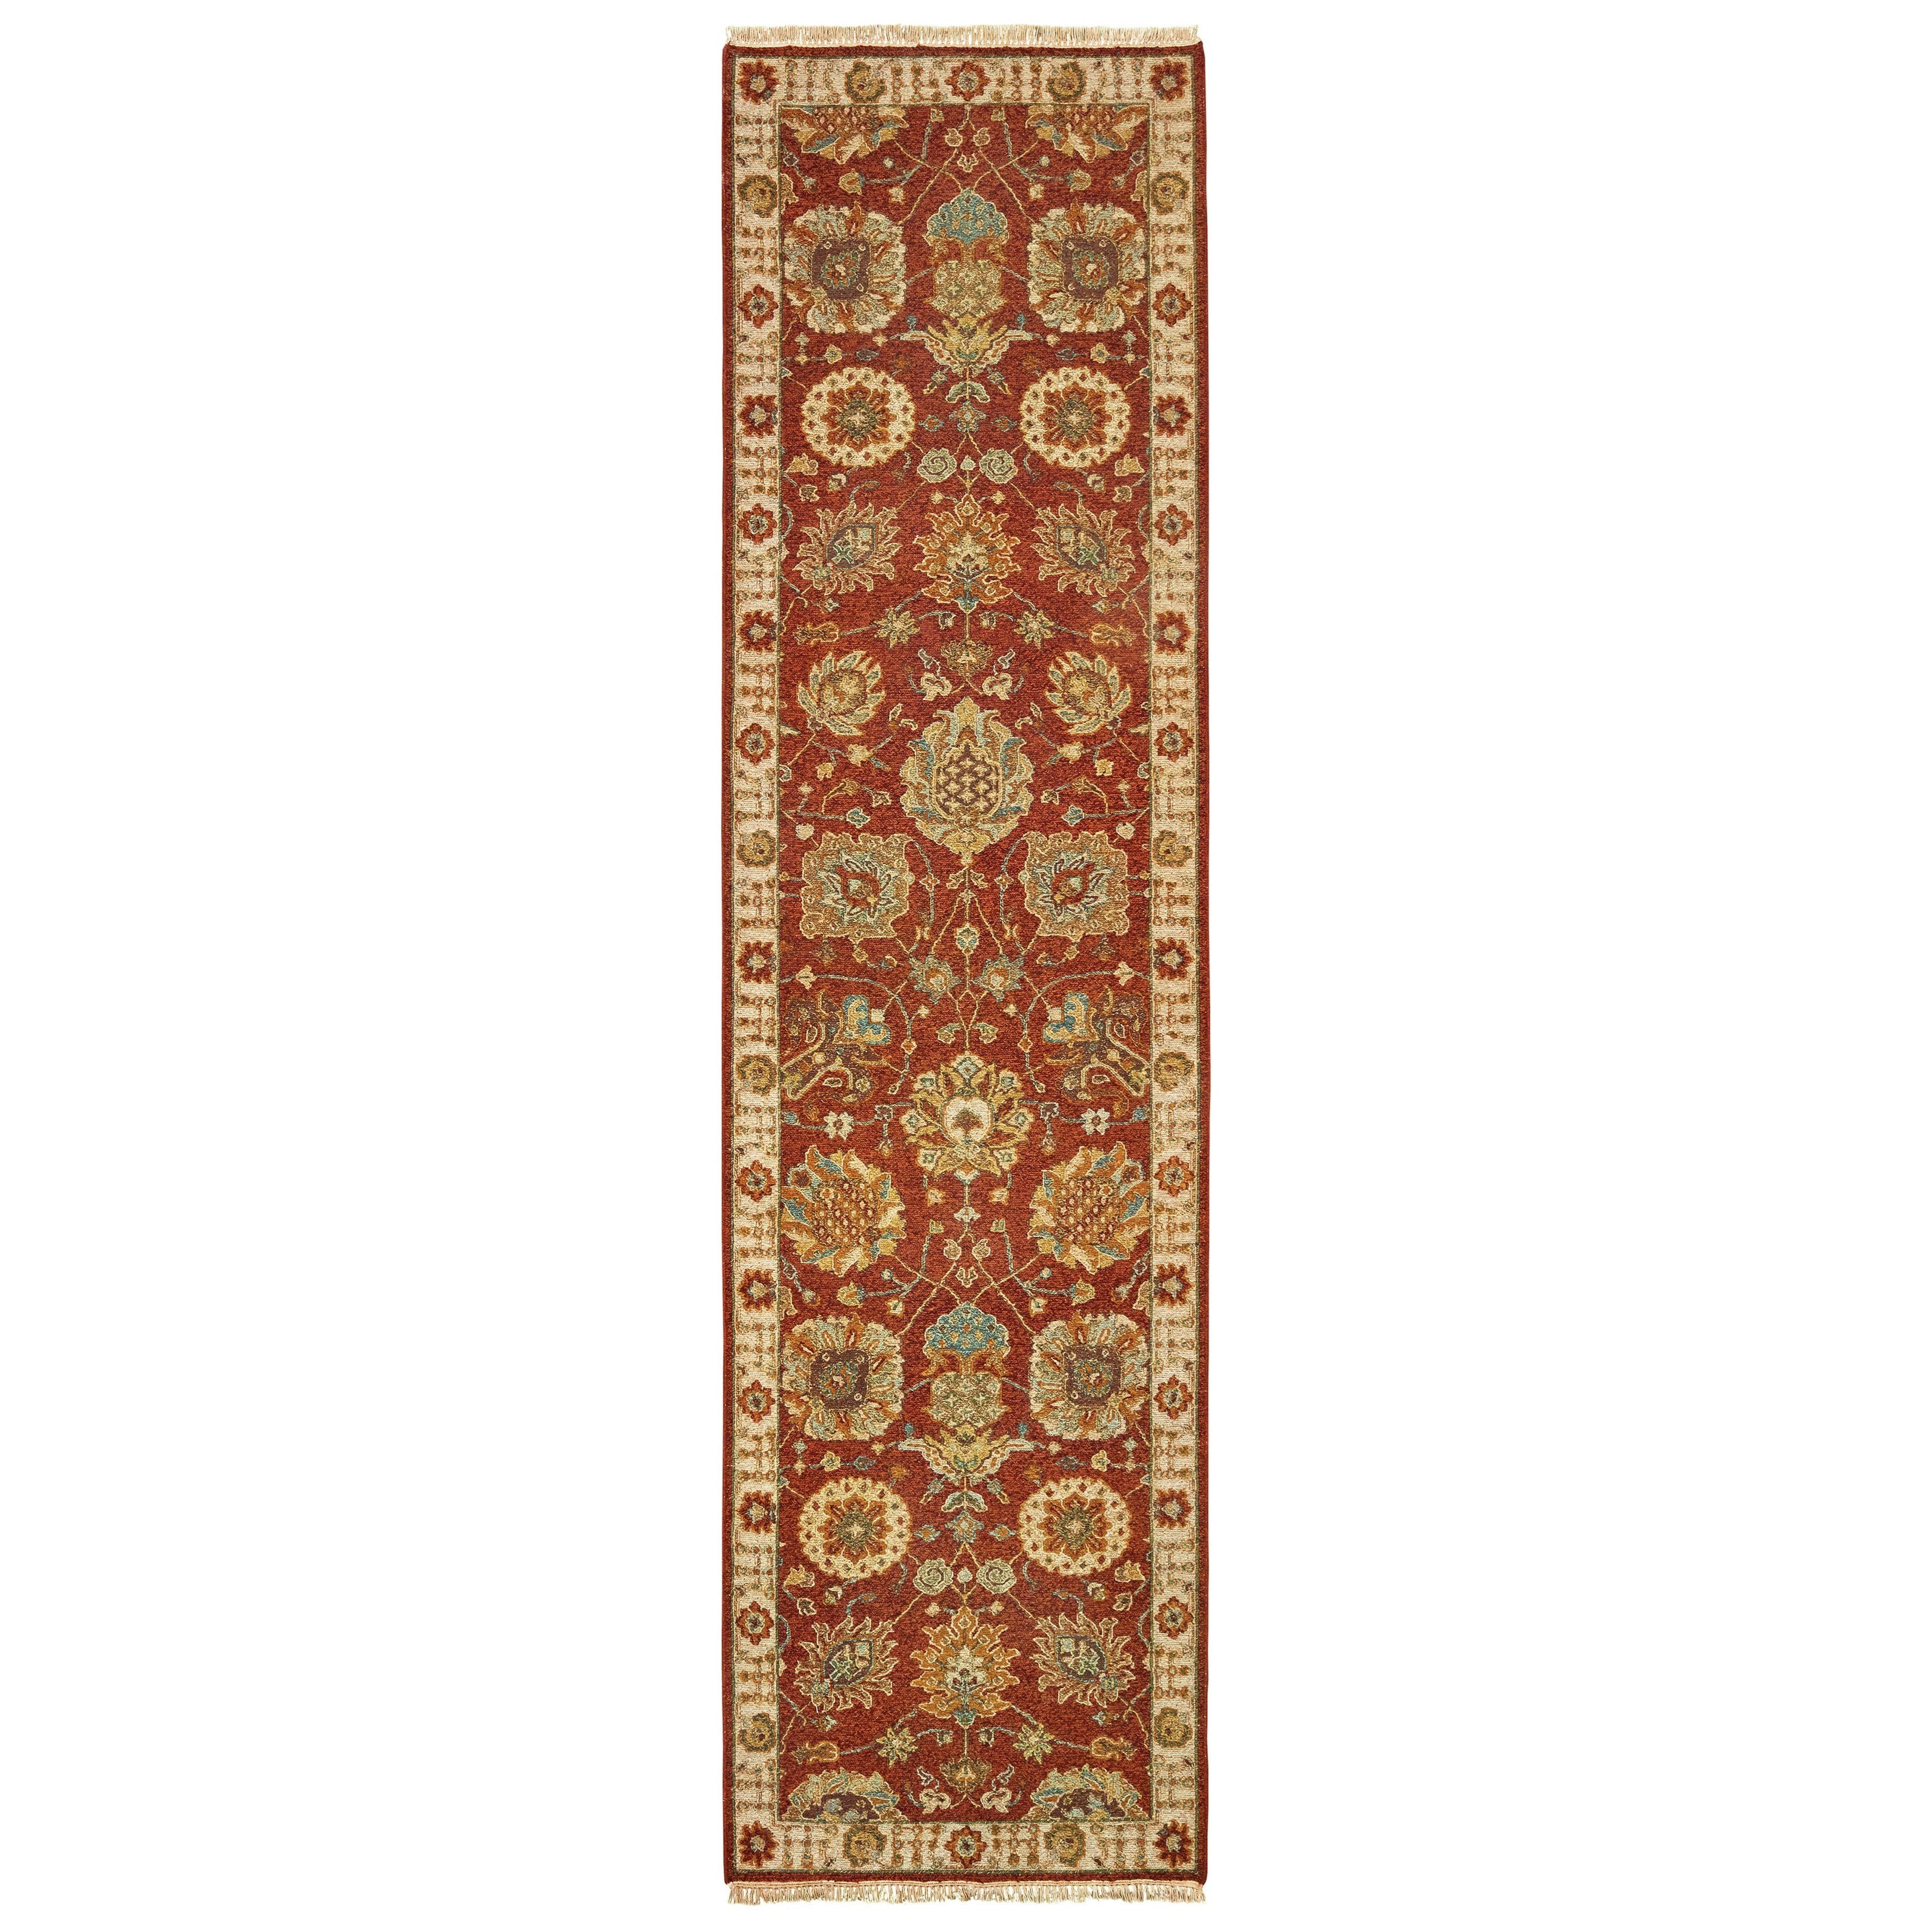 "Angora 2' 6"" X 10' Runner Rug by Oriental Weavers at Steger's Furniture"